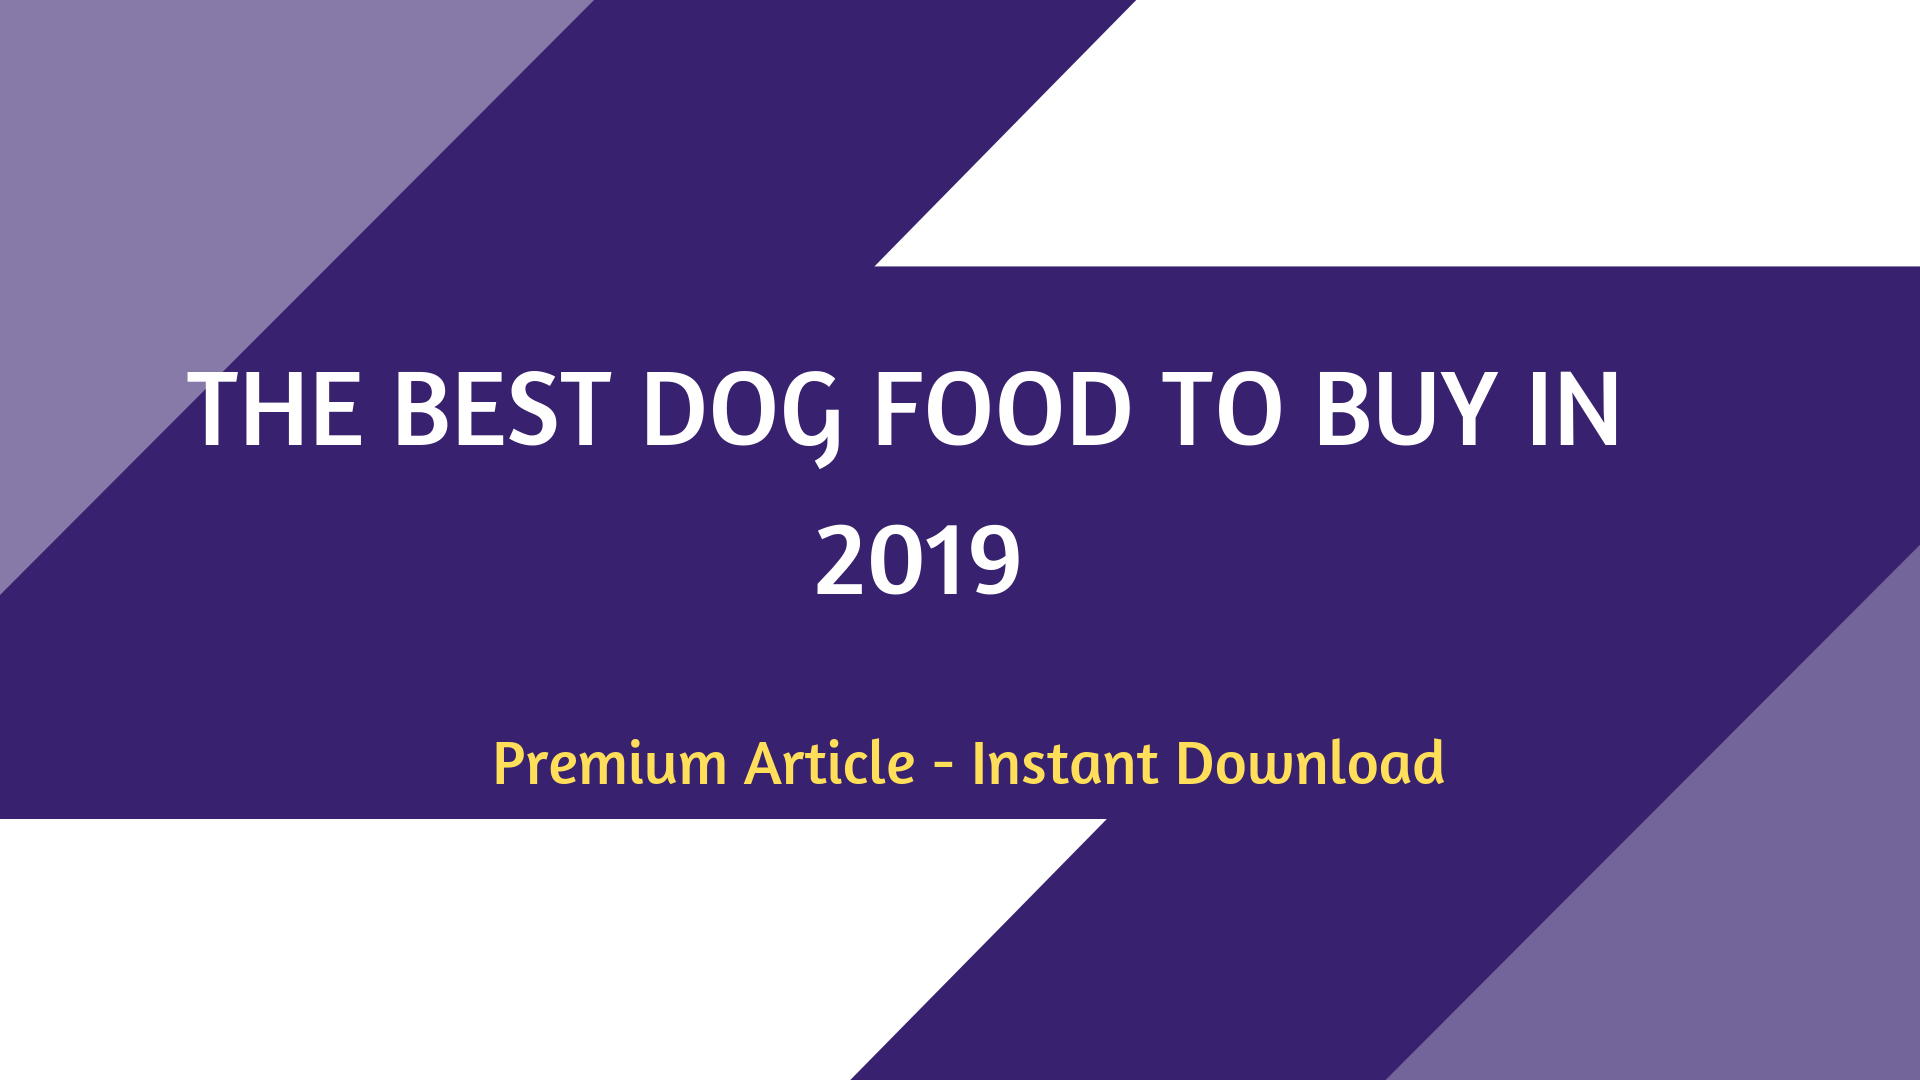 What Are The Best Dog Food in 2019?